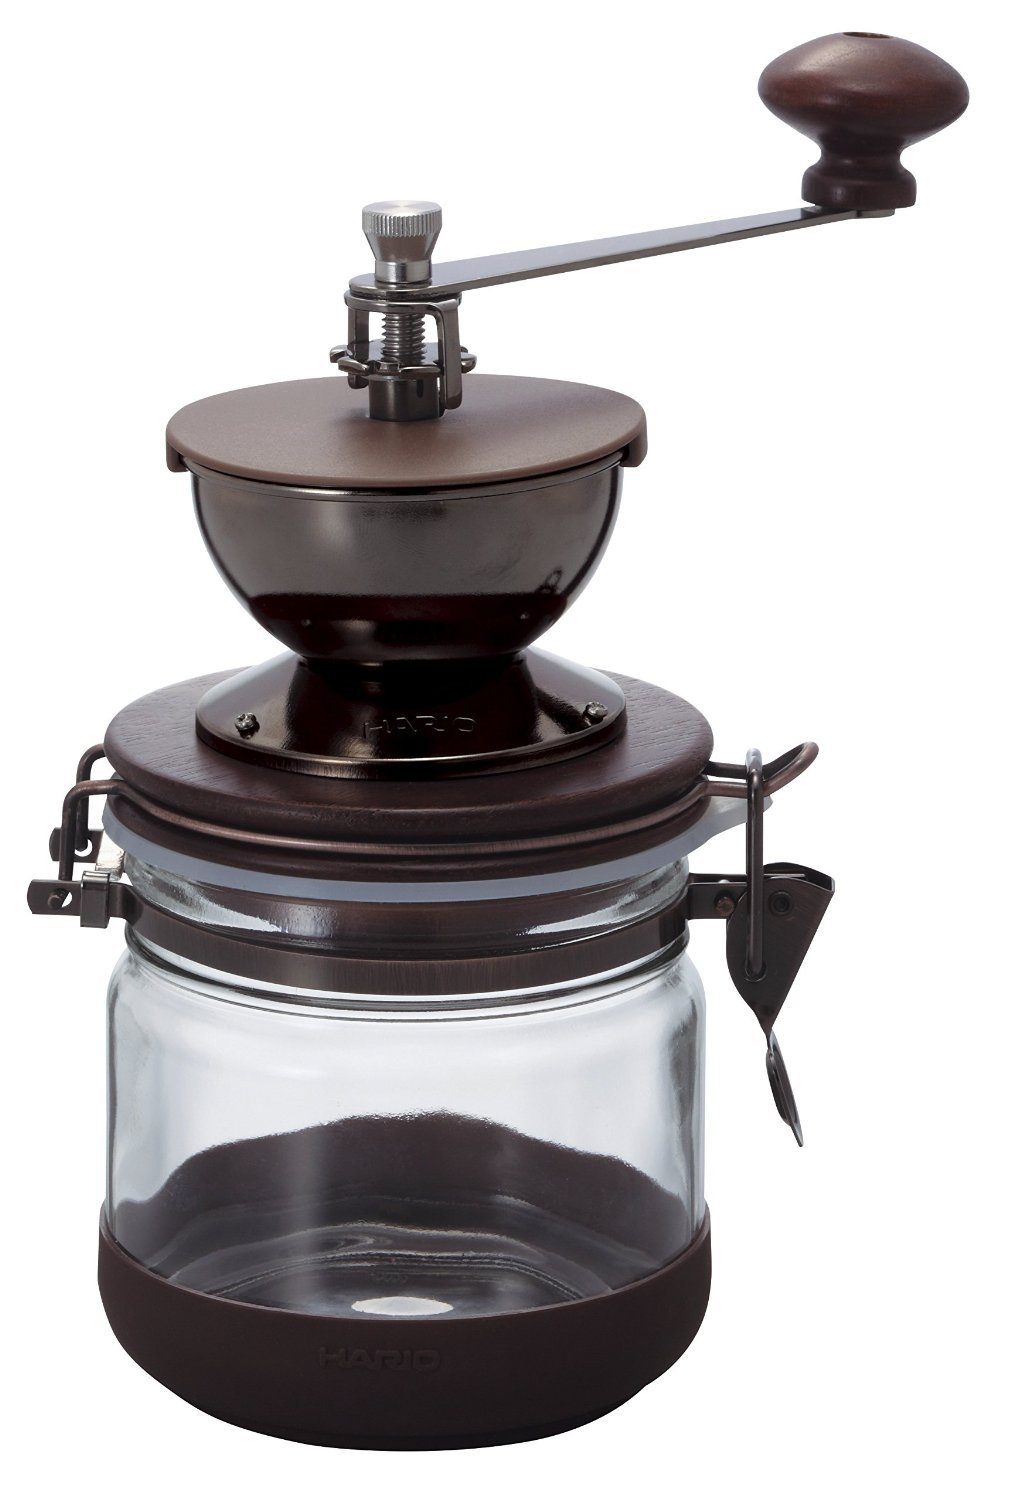 Hario CMHN-4''Canister'' Ceramic Coffee Mill Manual Grinder, 120g